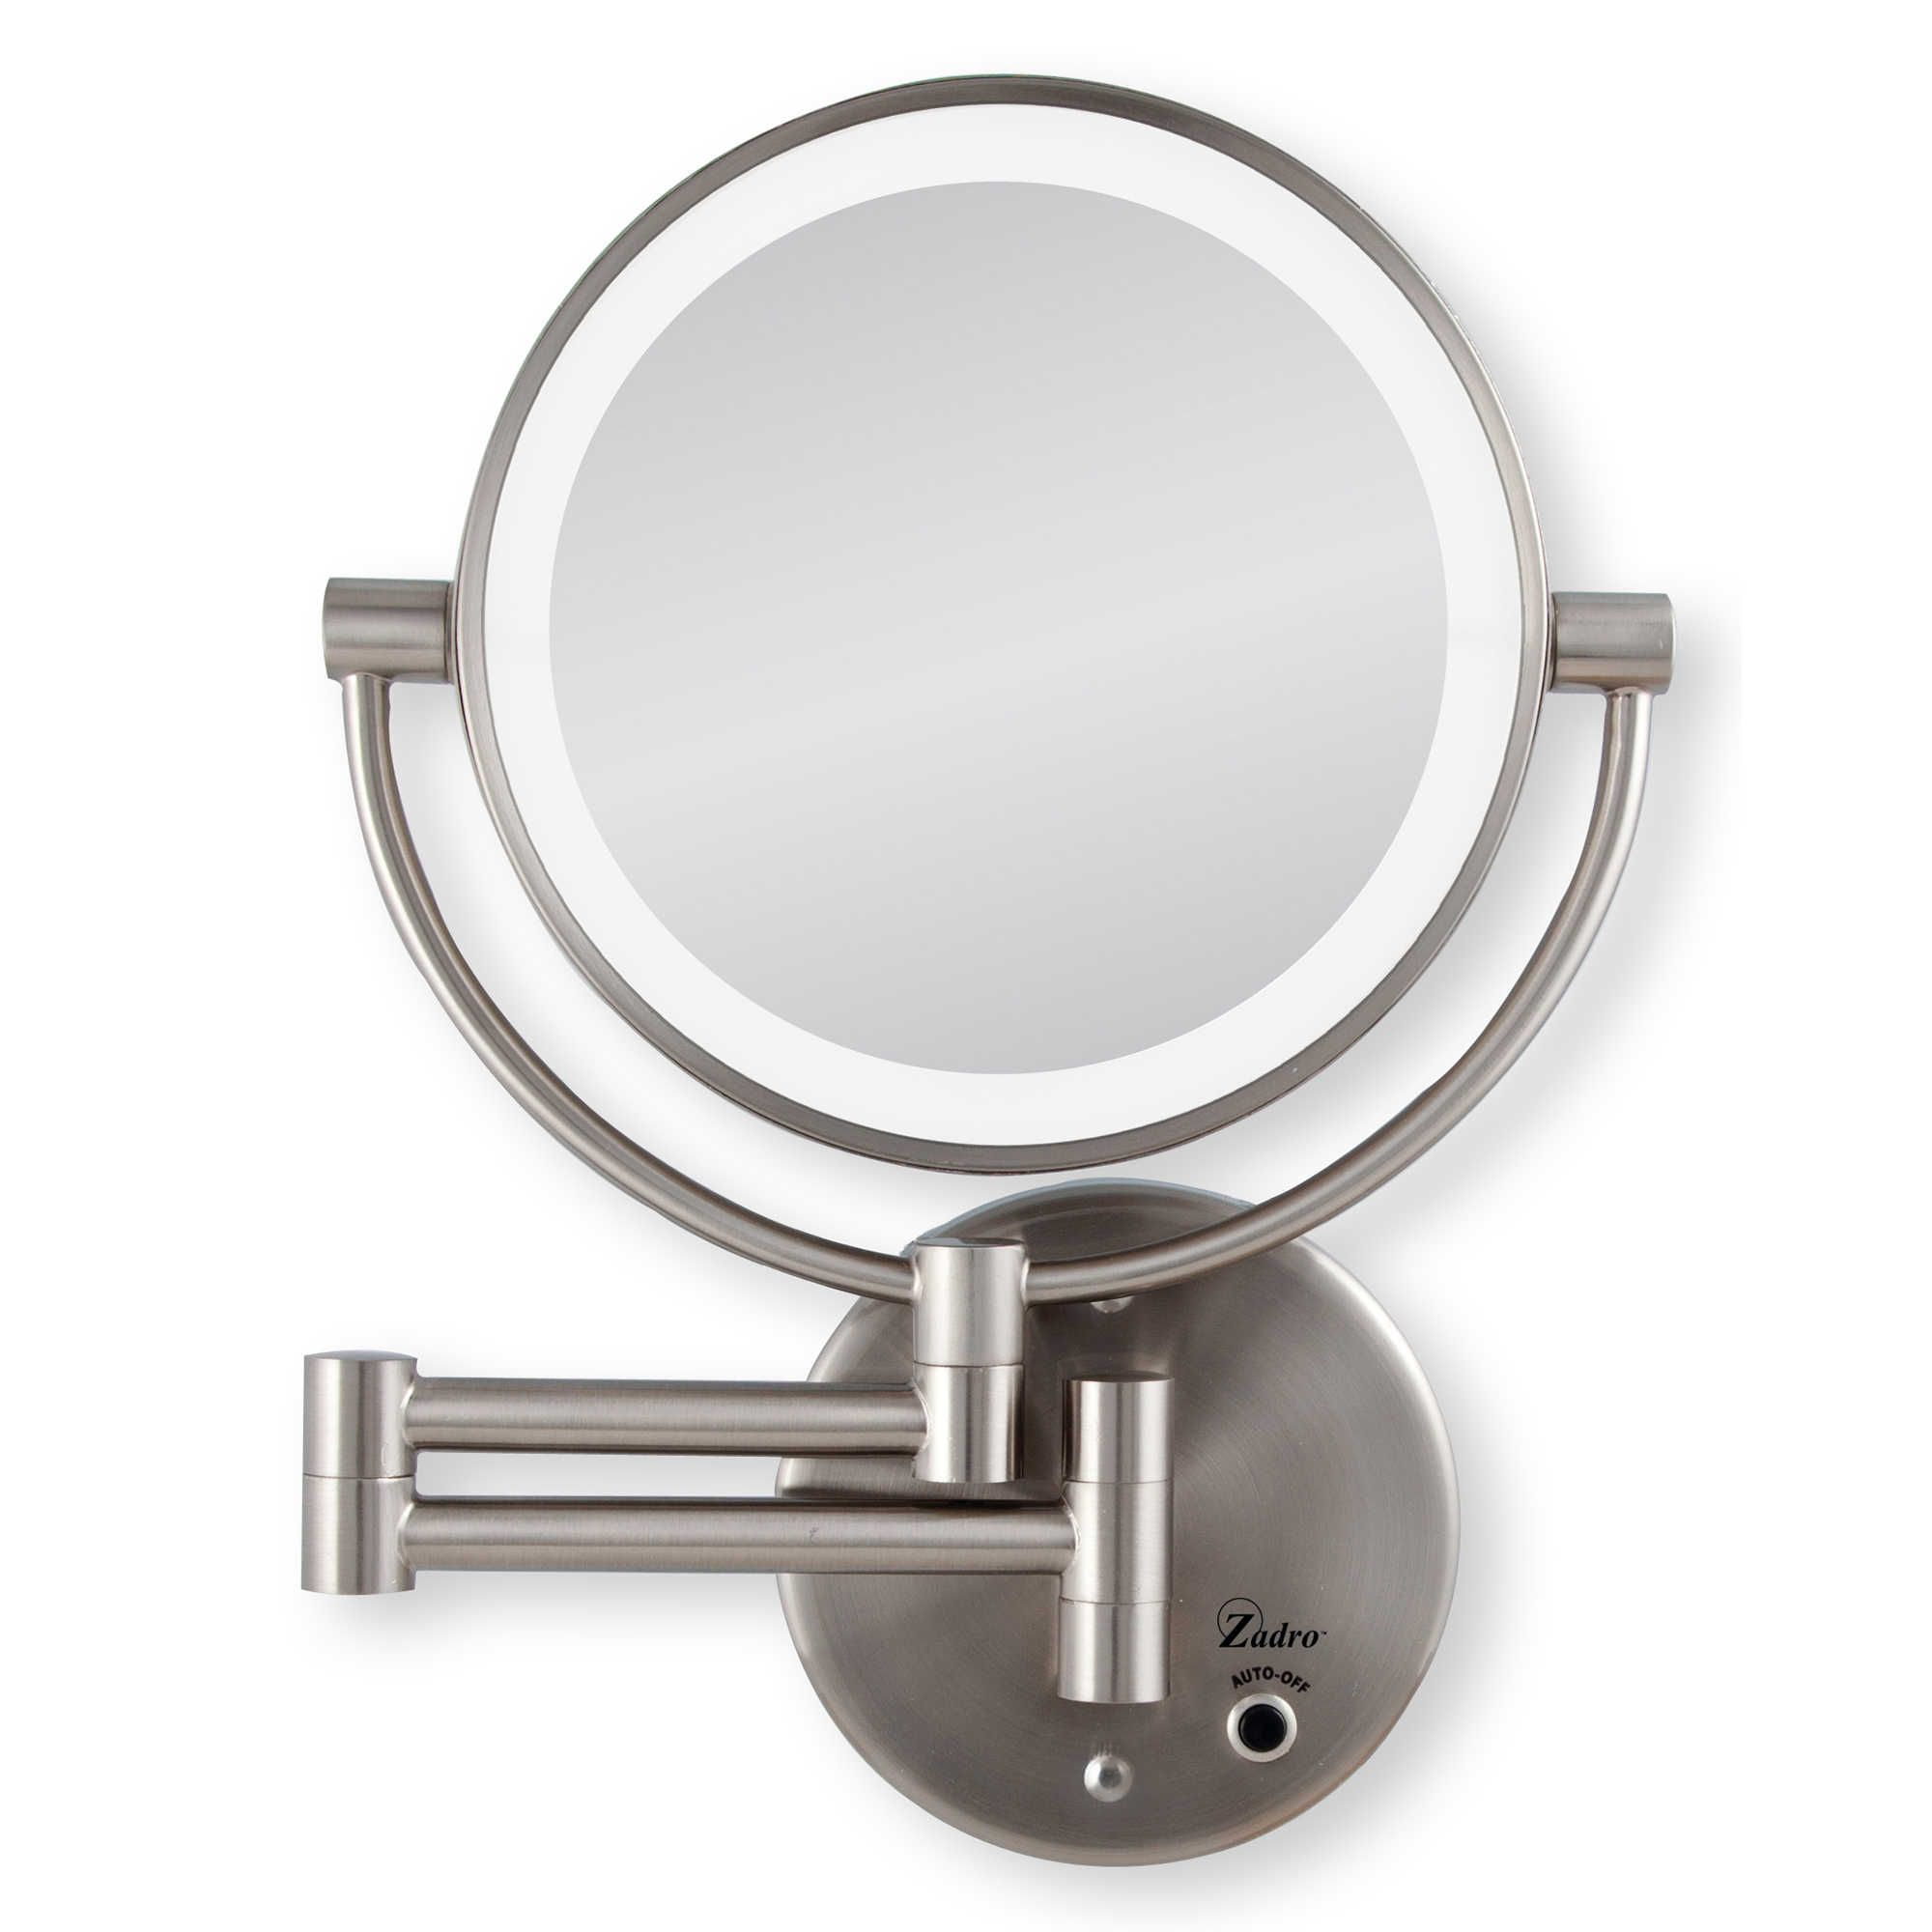 Zadro™ 10x/1x Cordless LED Lighted Wall Mirror Lighted